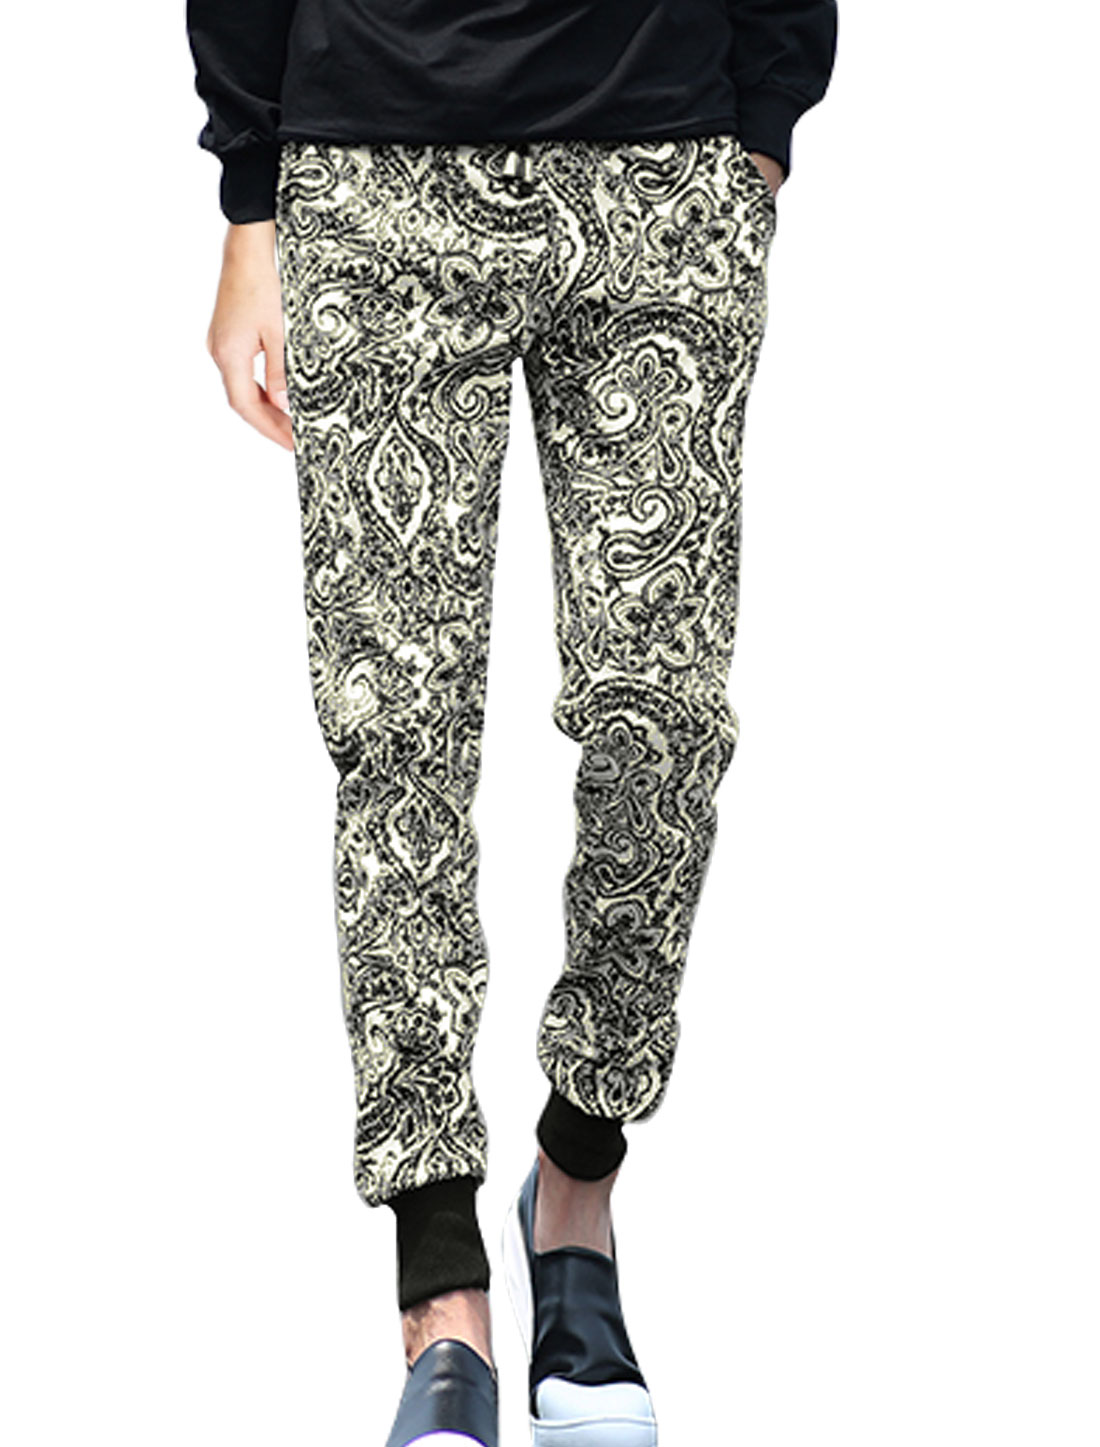 Men Paisleys Novelty Prints Casual Tapered Trousers Black W32